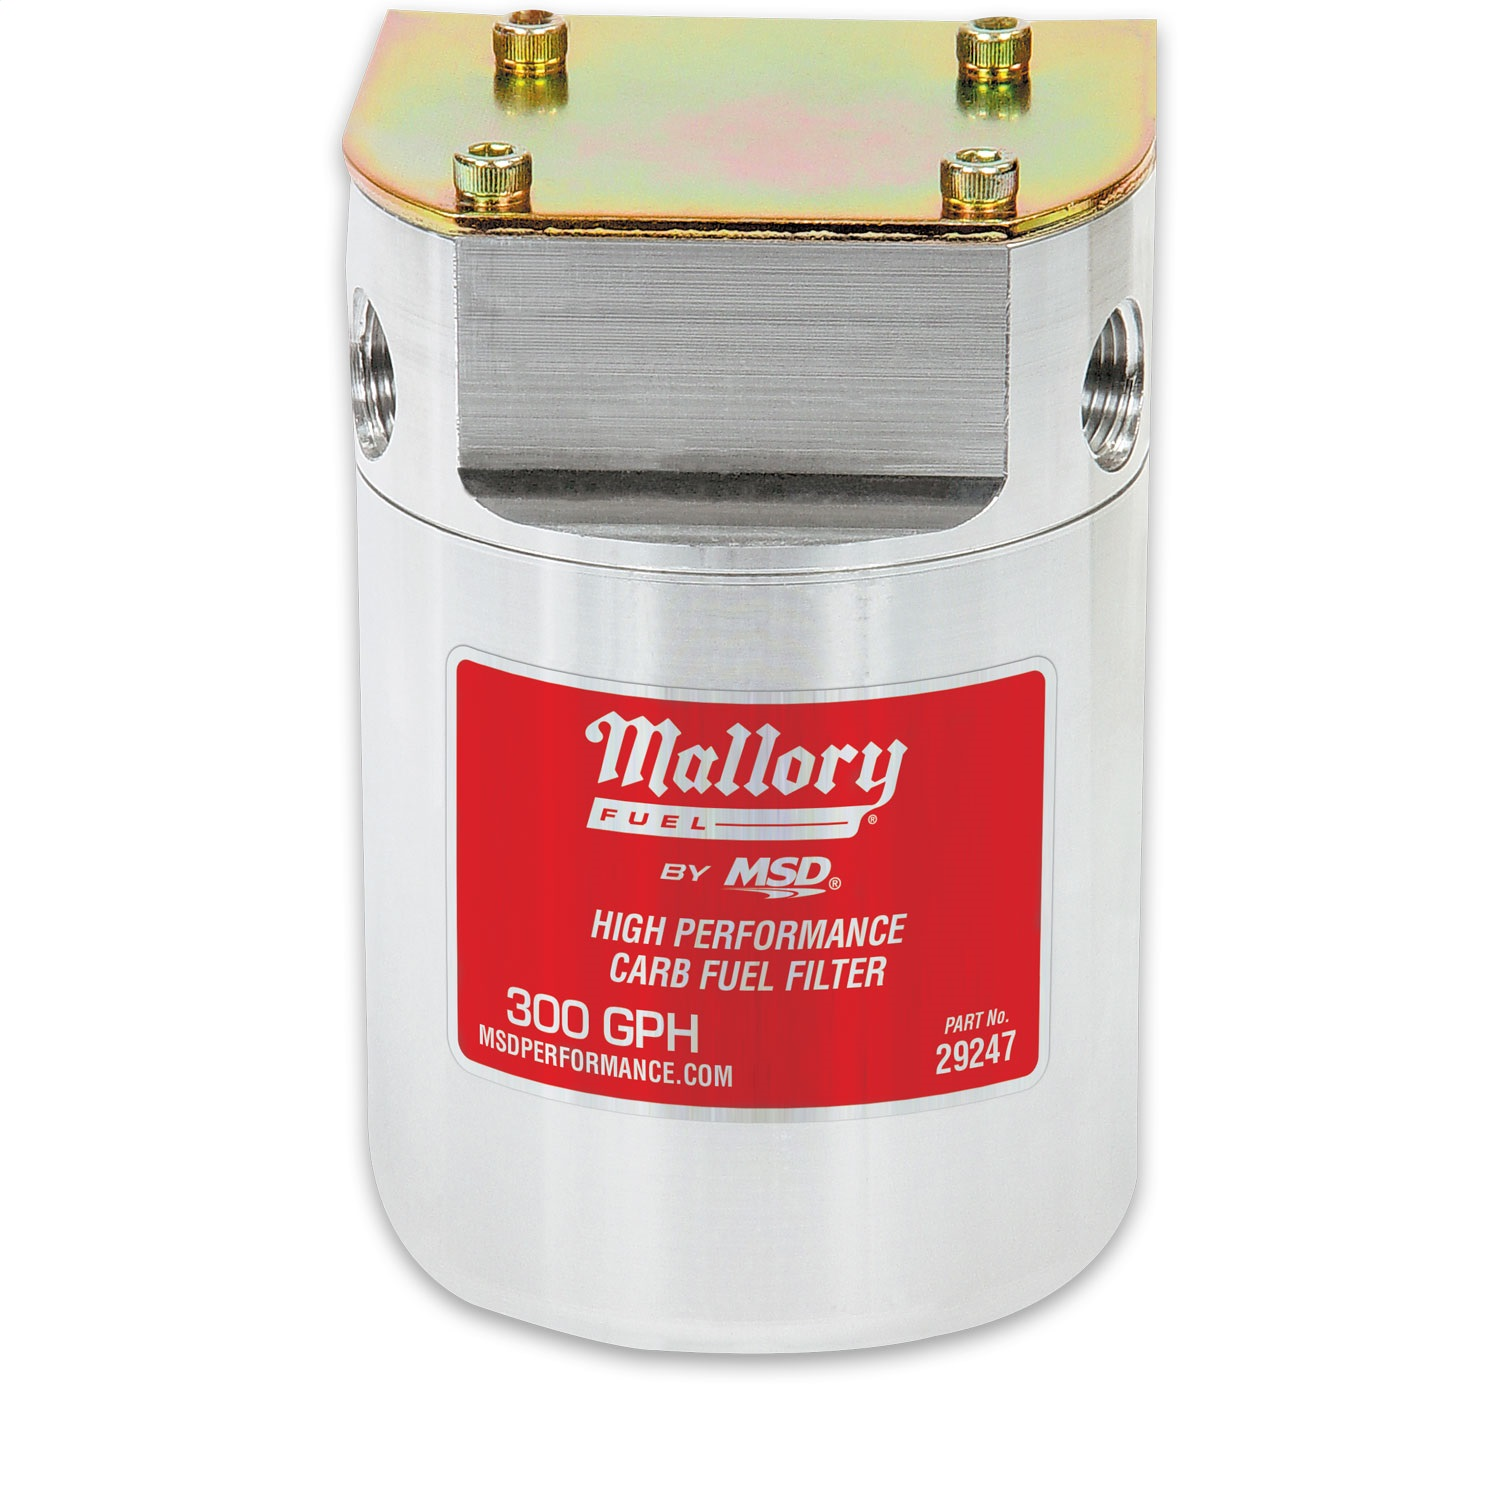 Mallory 29247 Fuel Filter; Low Pressure Carbureted 40 Micron Filter; Dual 3/8 in NPT Inlets/Outlets; Delivers Up To 300 GPH;